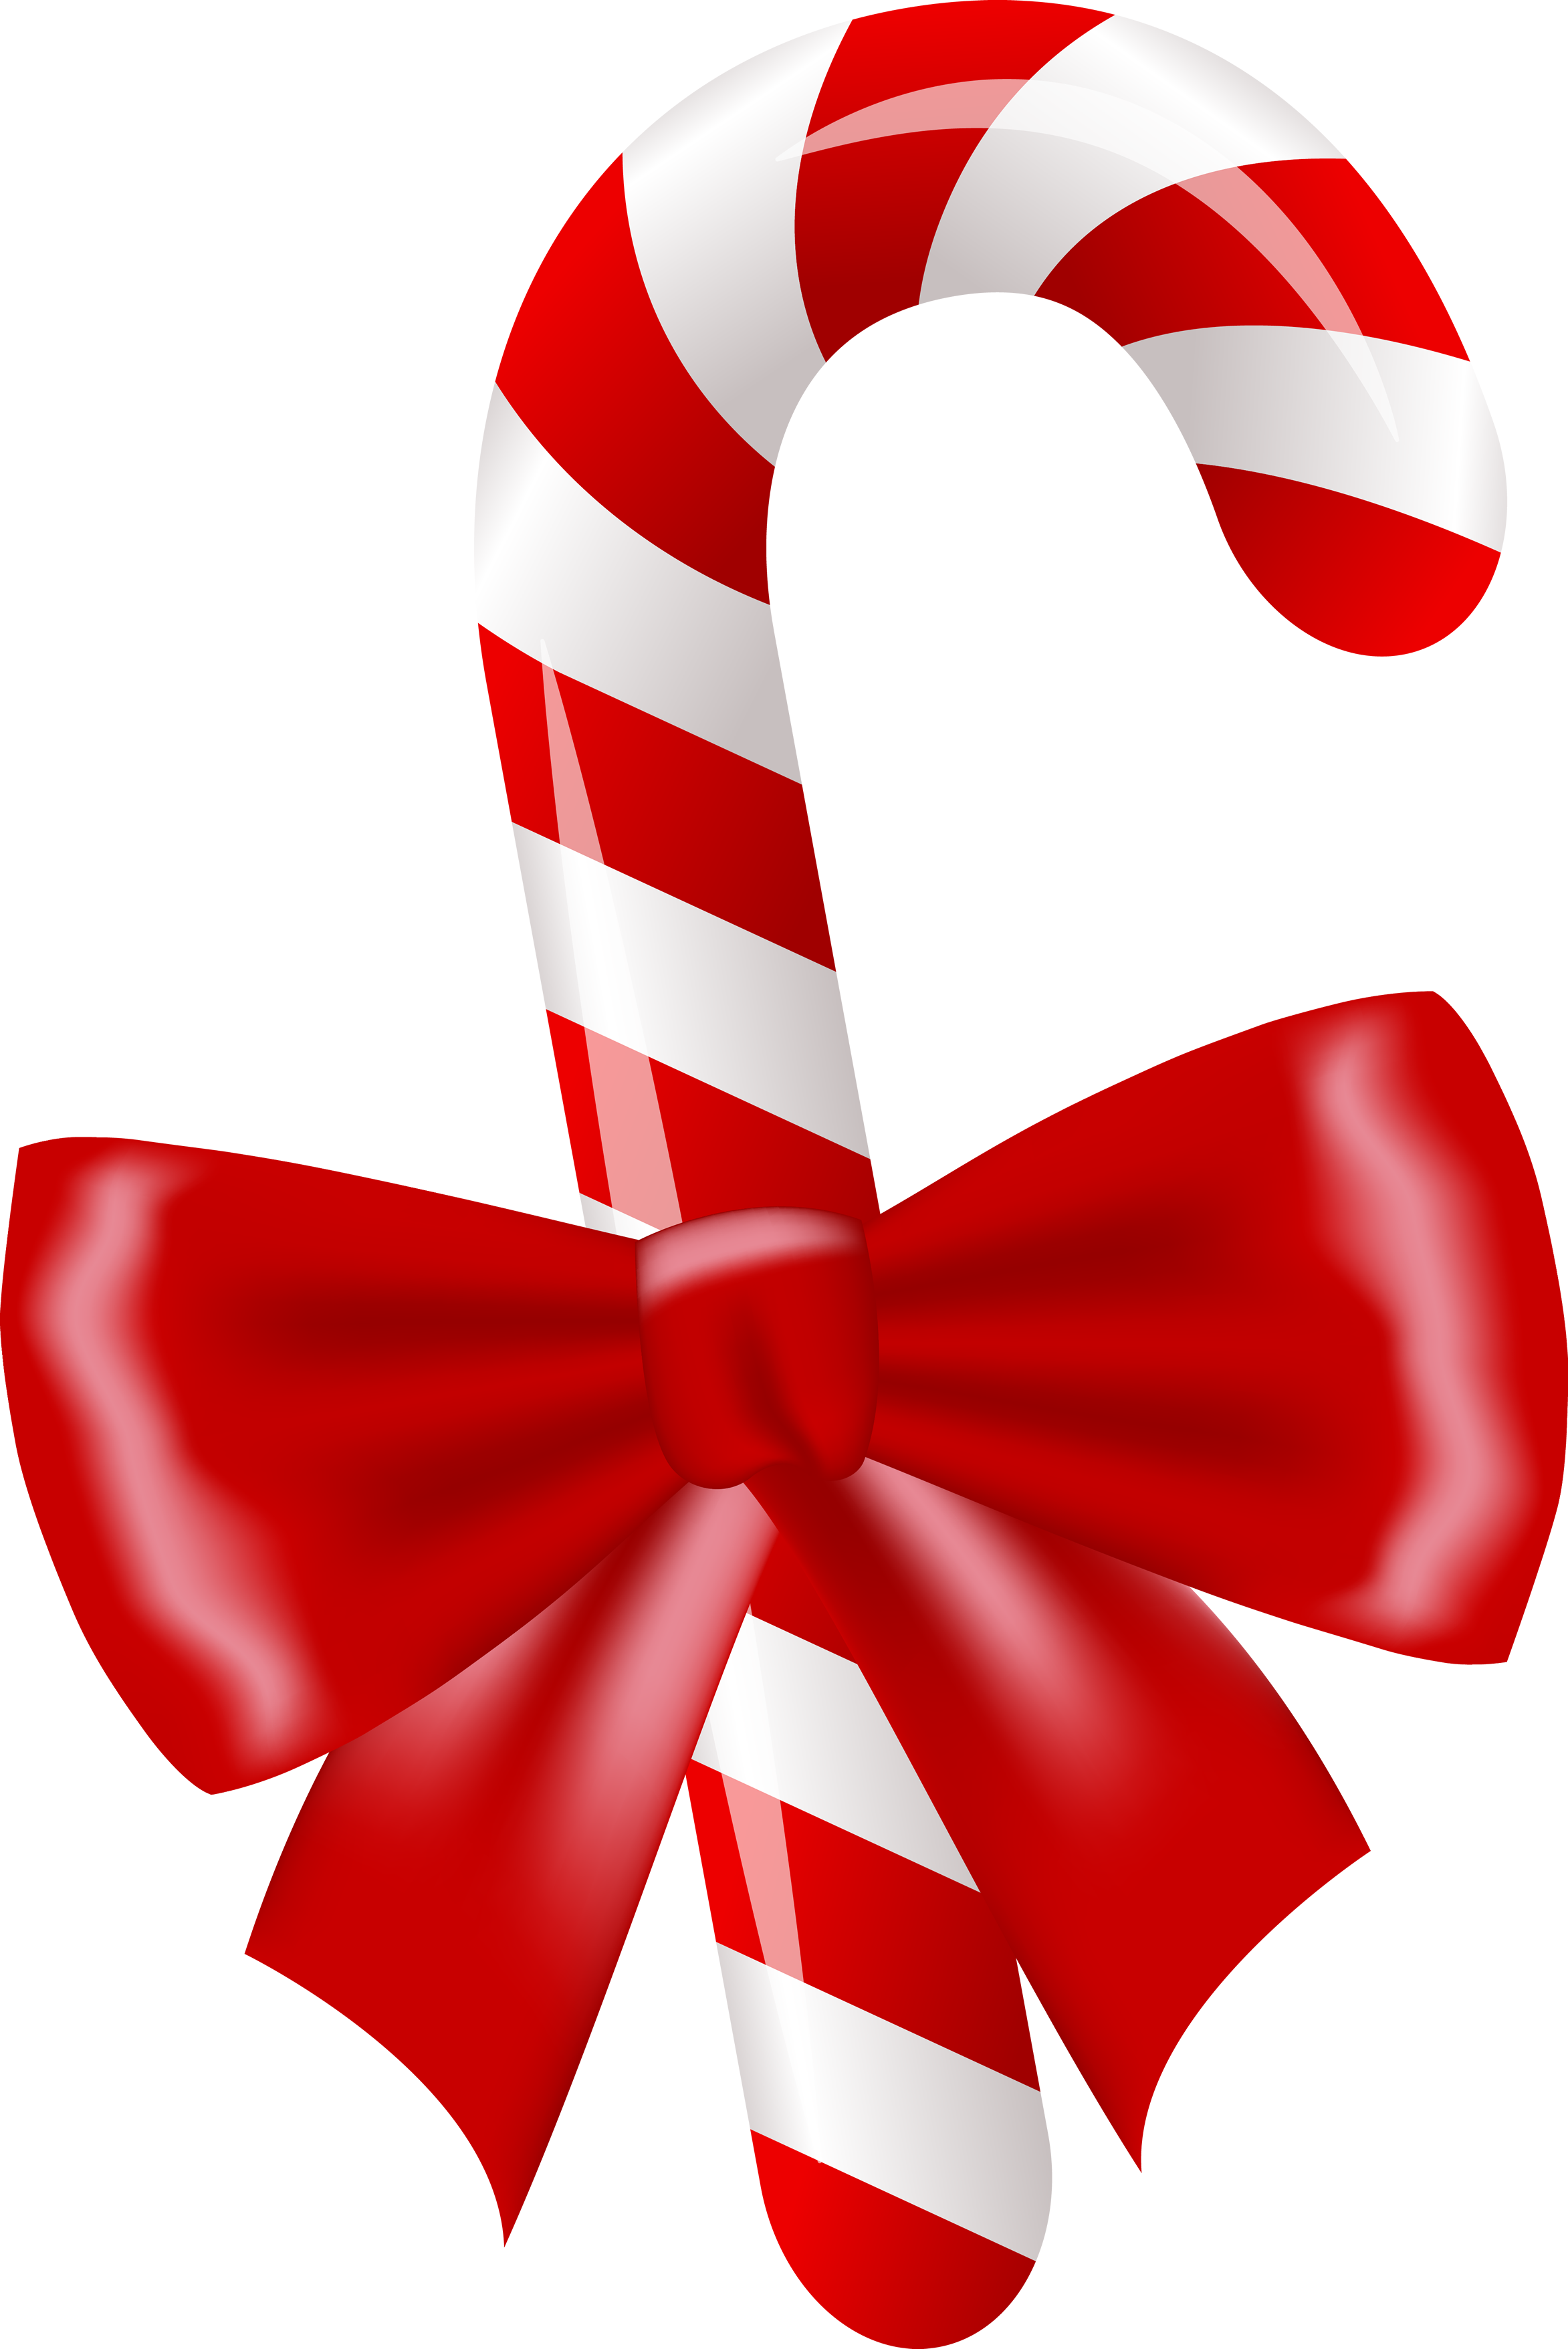 christmas candy png image purepng free transparent cc0 png image library - Candy Christmas